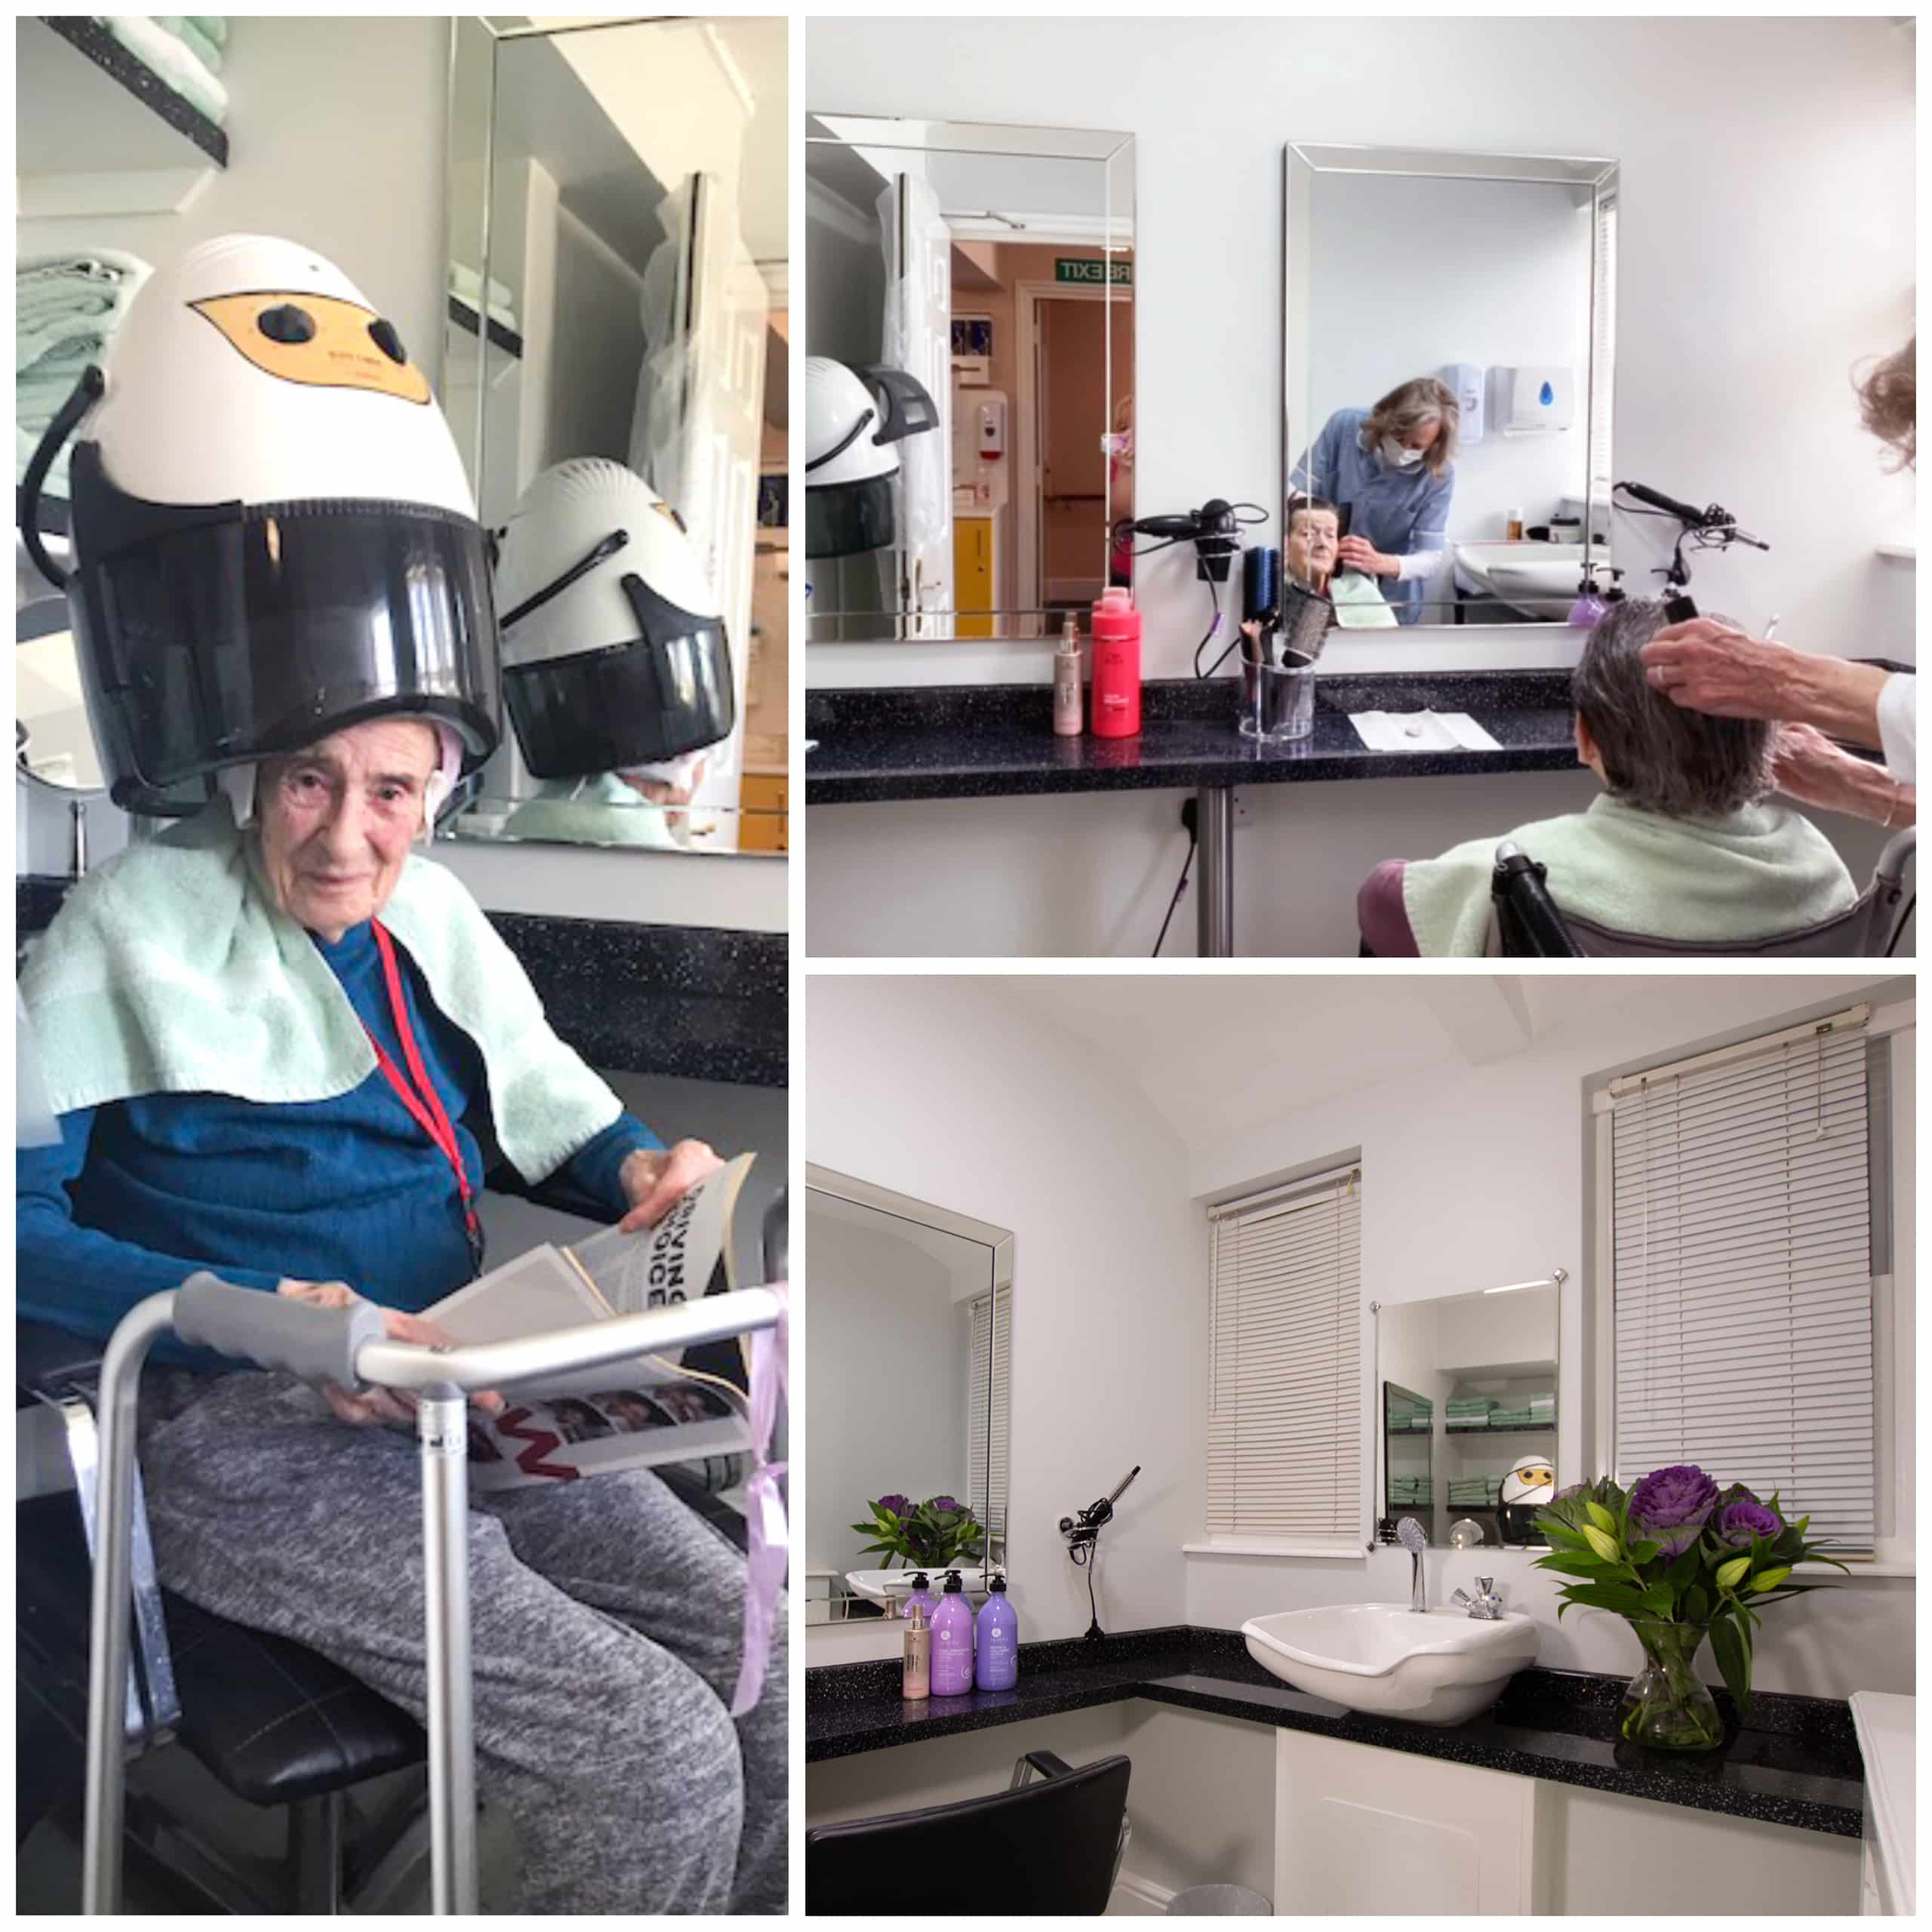 Deddington care home residents enjoy a cut and blow dry from their hairdresser in Featherton House's new-look salon.